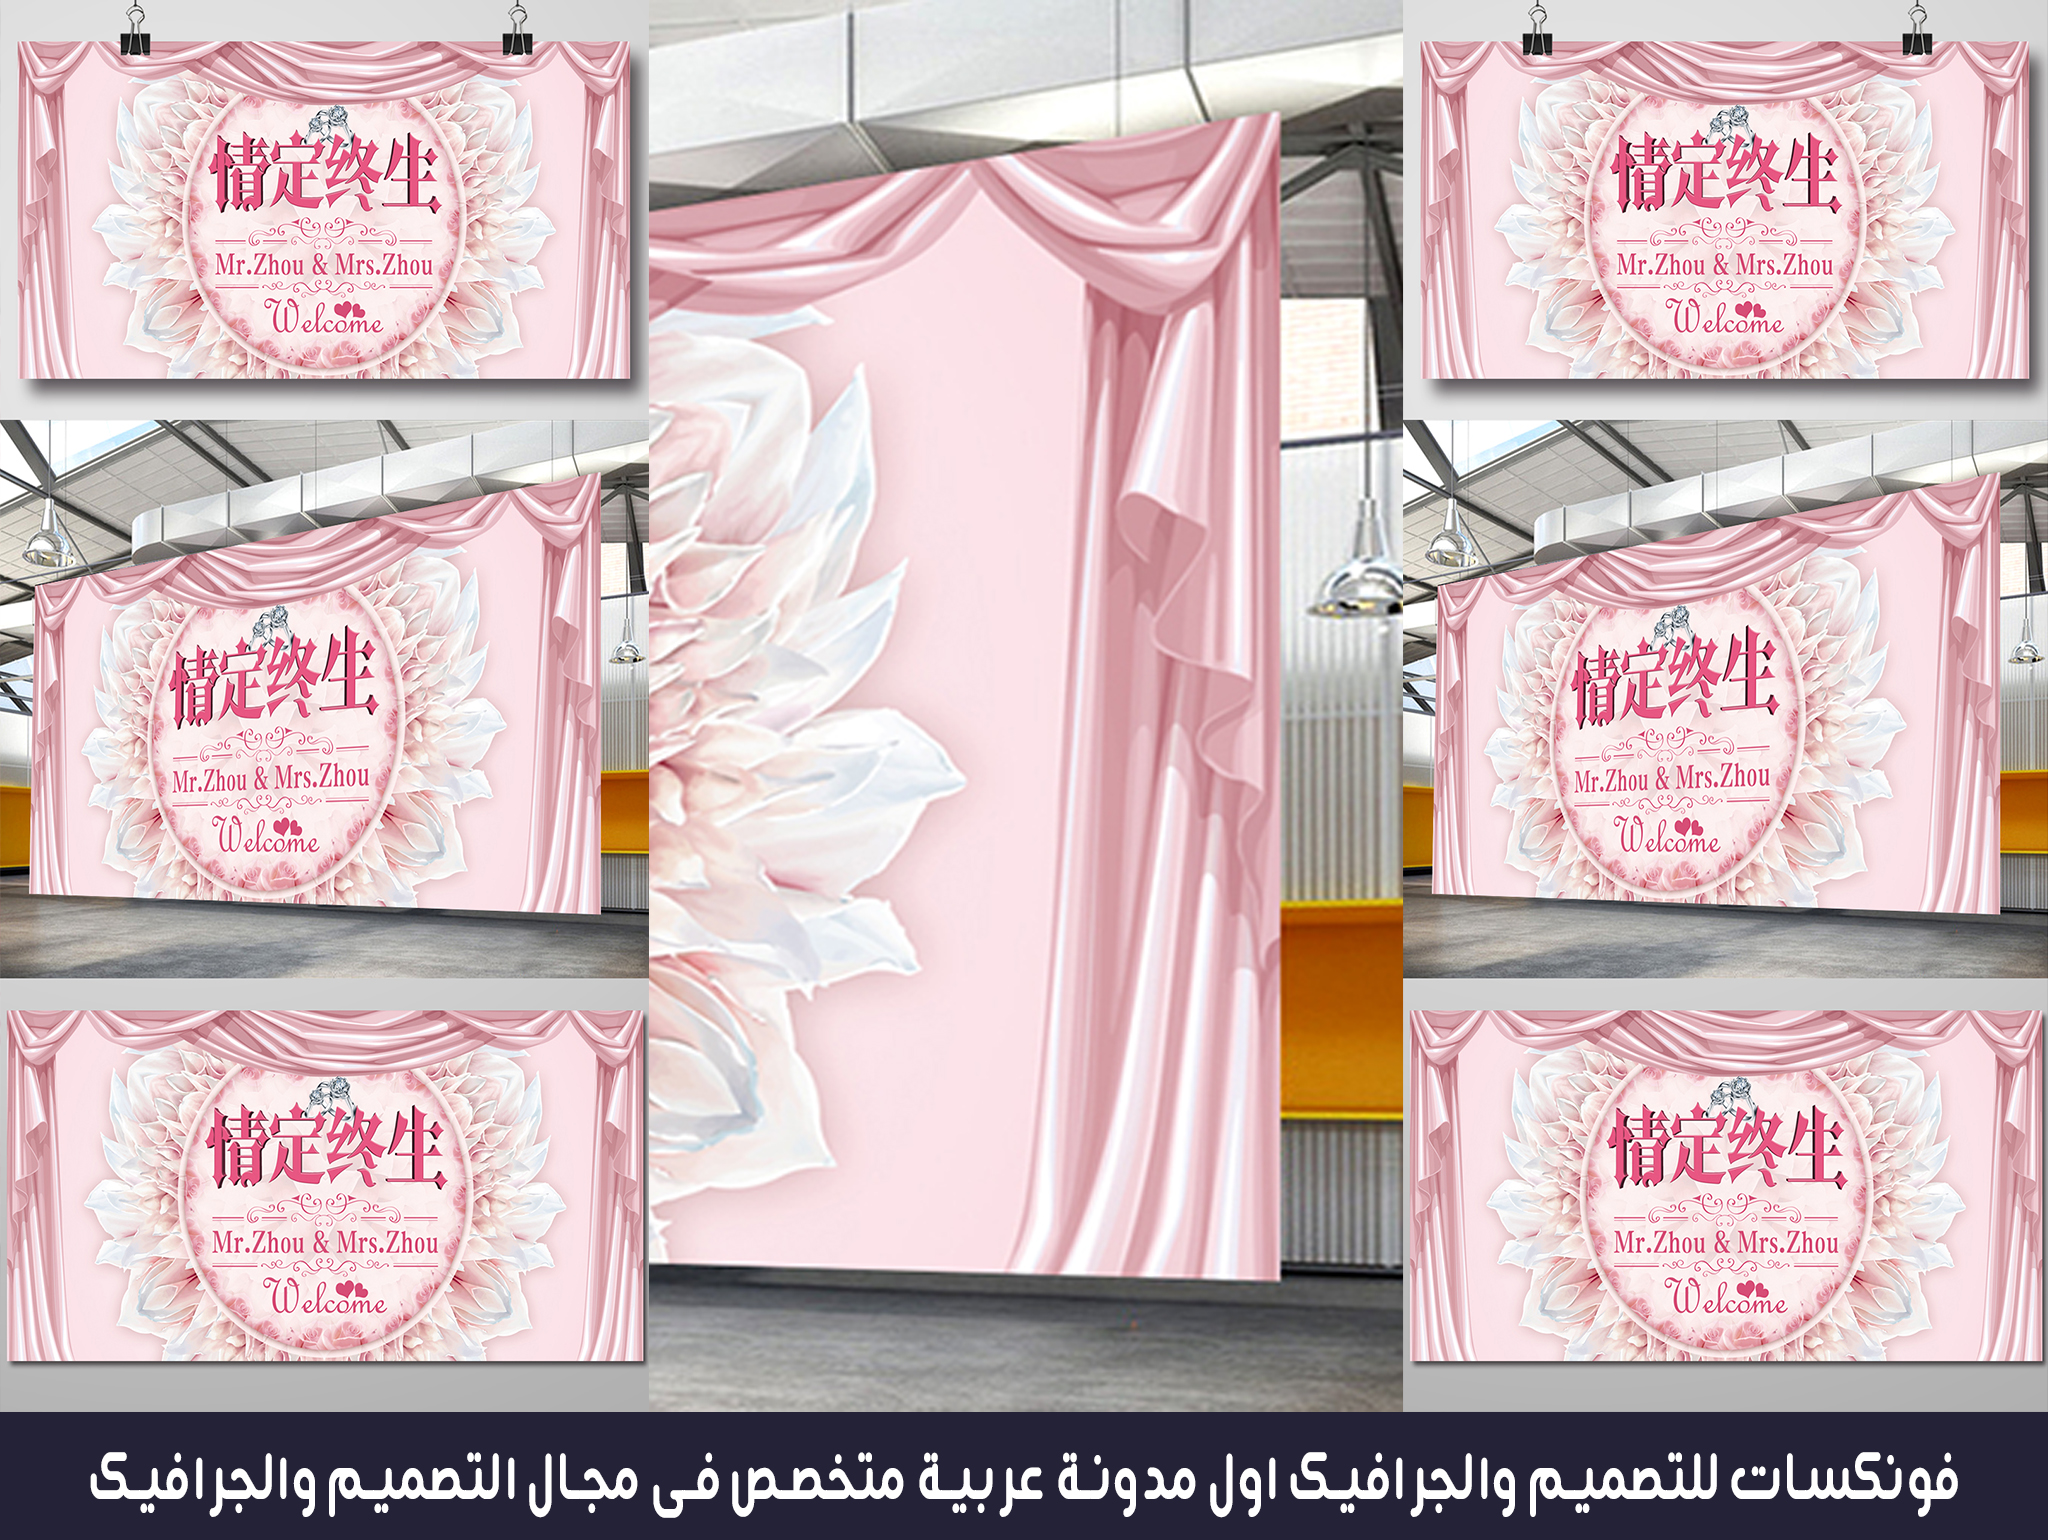 Banner psd file for web and print in pink color